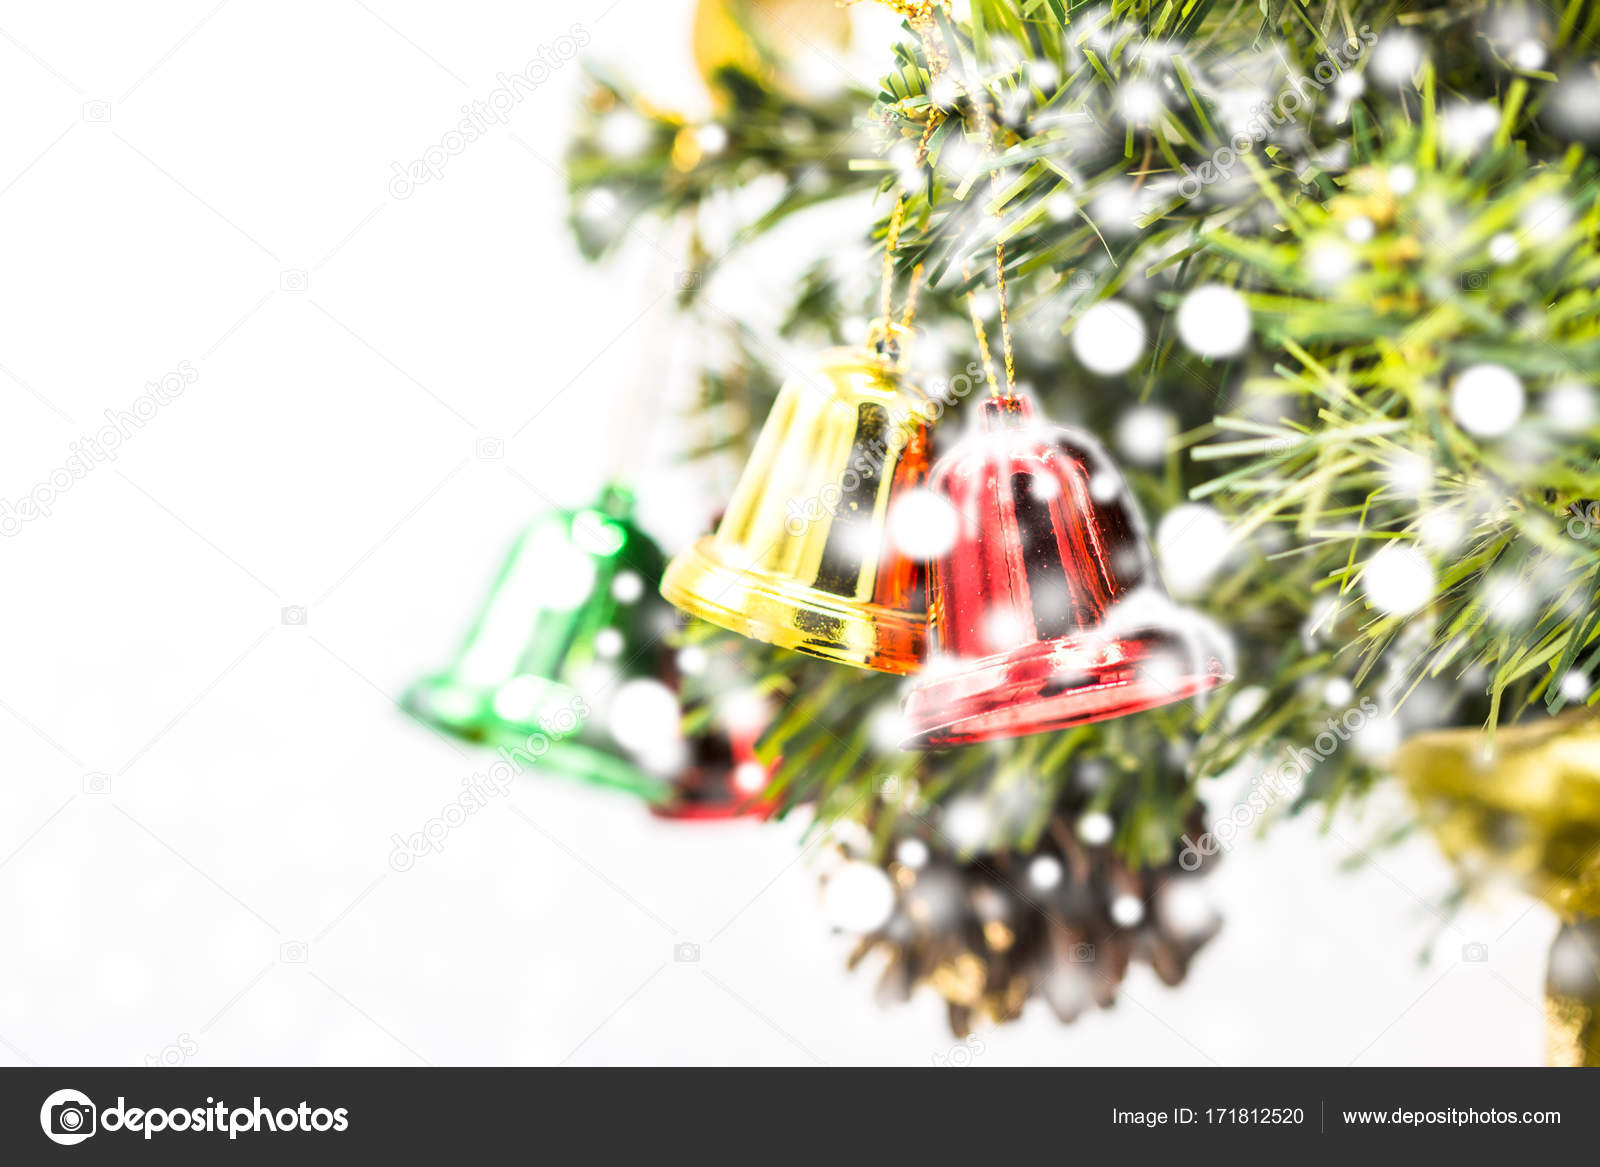 Red Green Gold Christmas Theme Red And Green And Gold Christmas Bell Decoration Hanging From Christmas Tree Stock Photo C Jomvairai 171812520